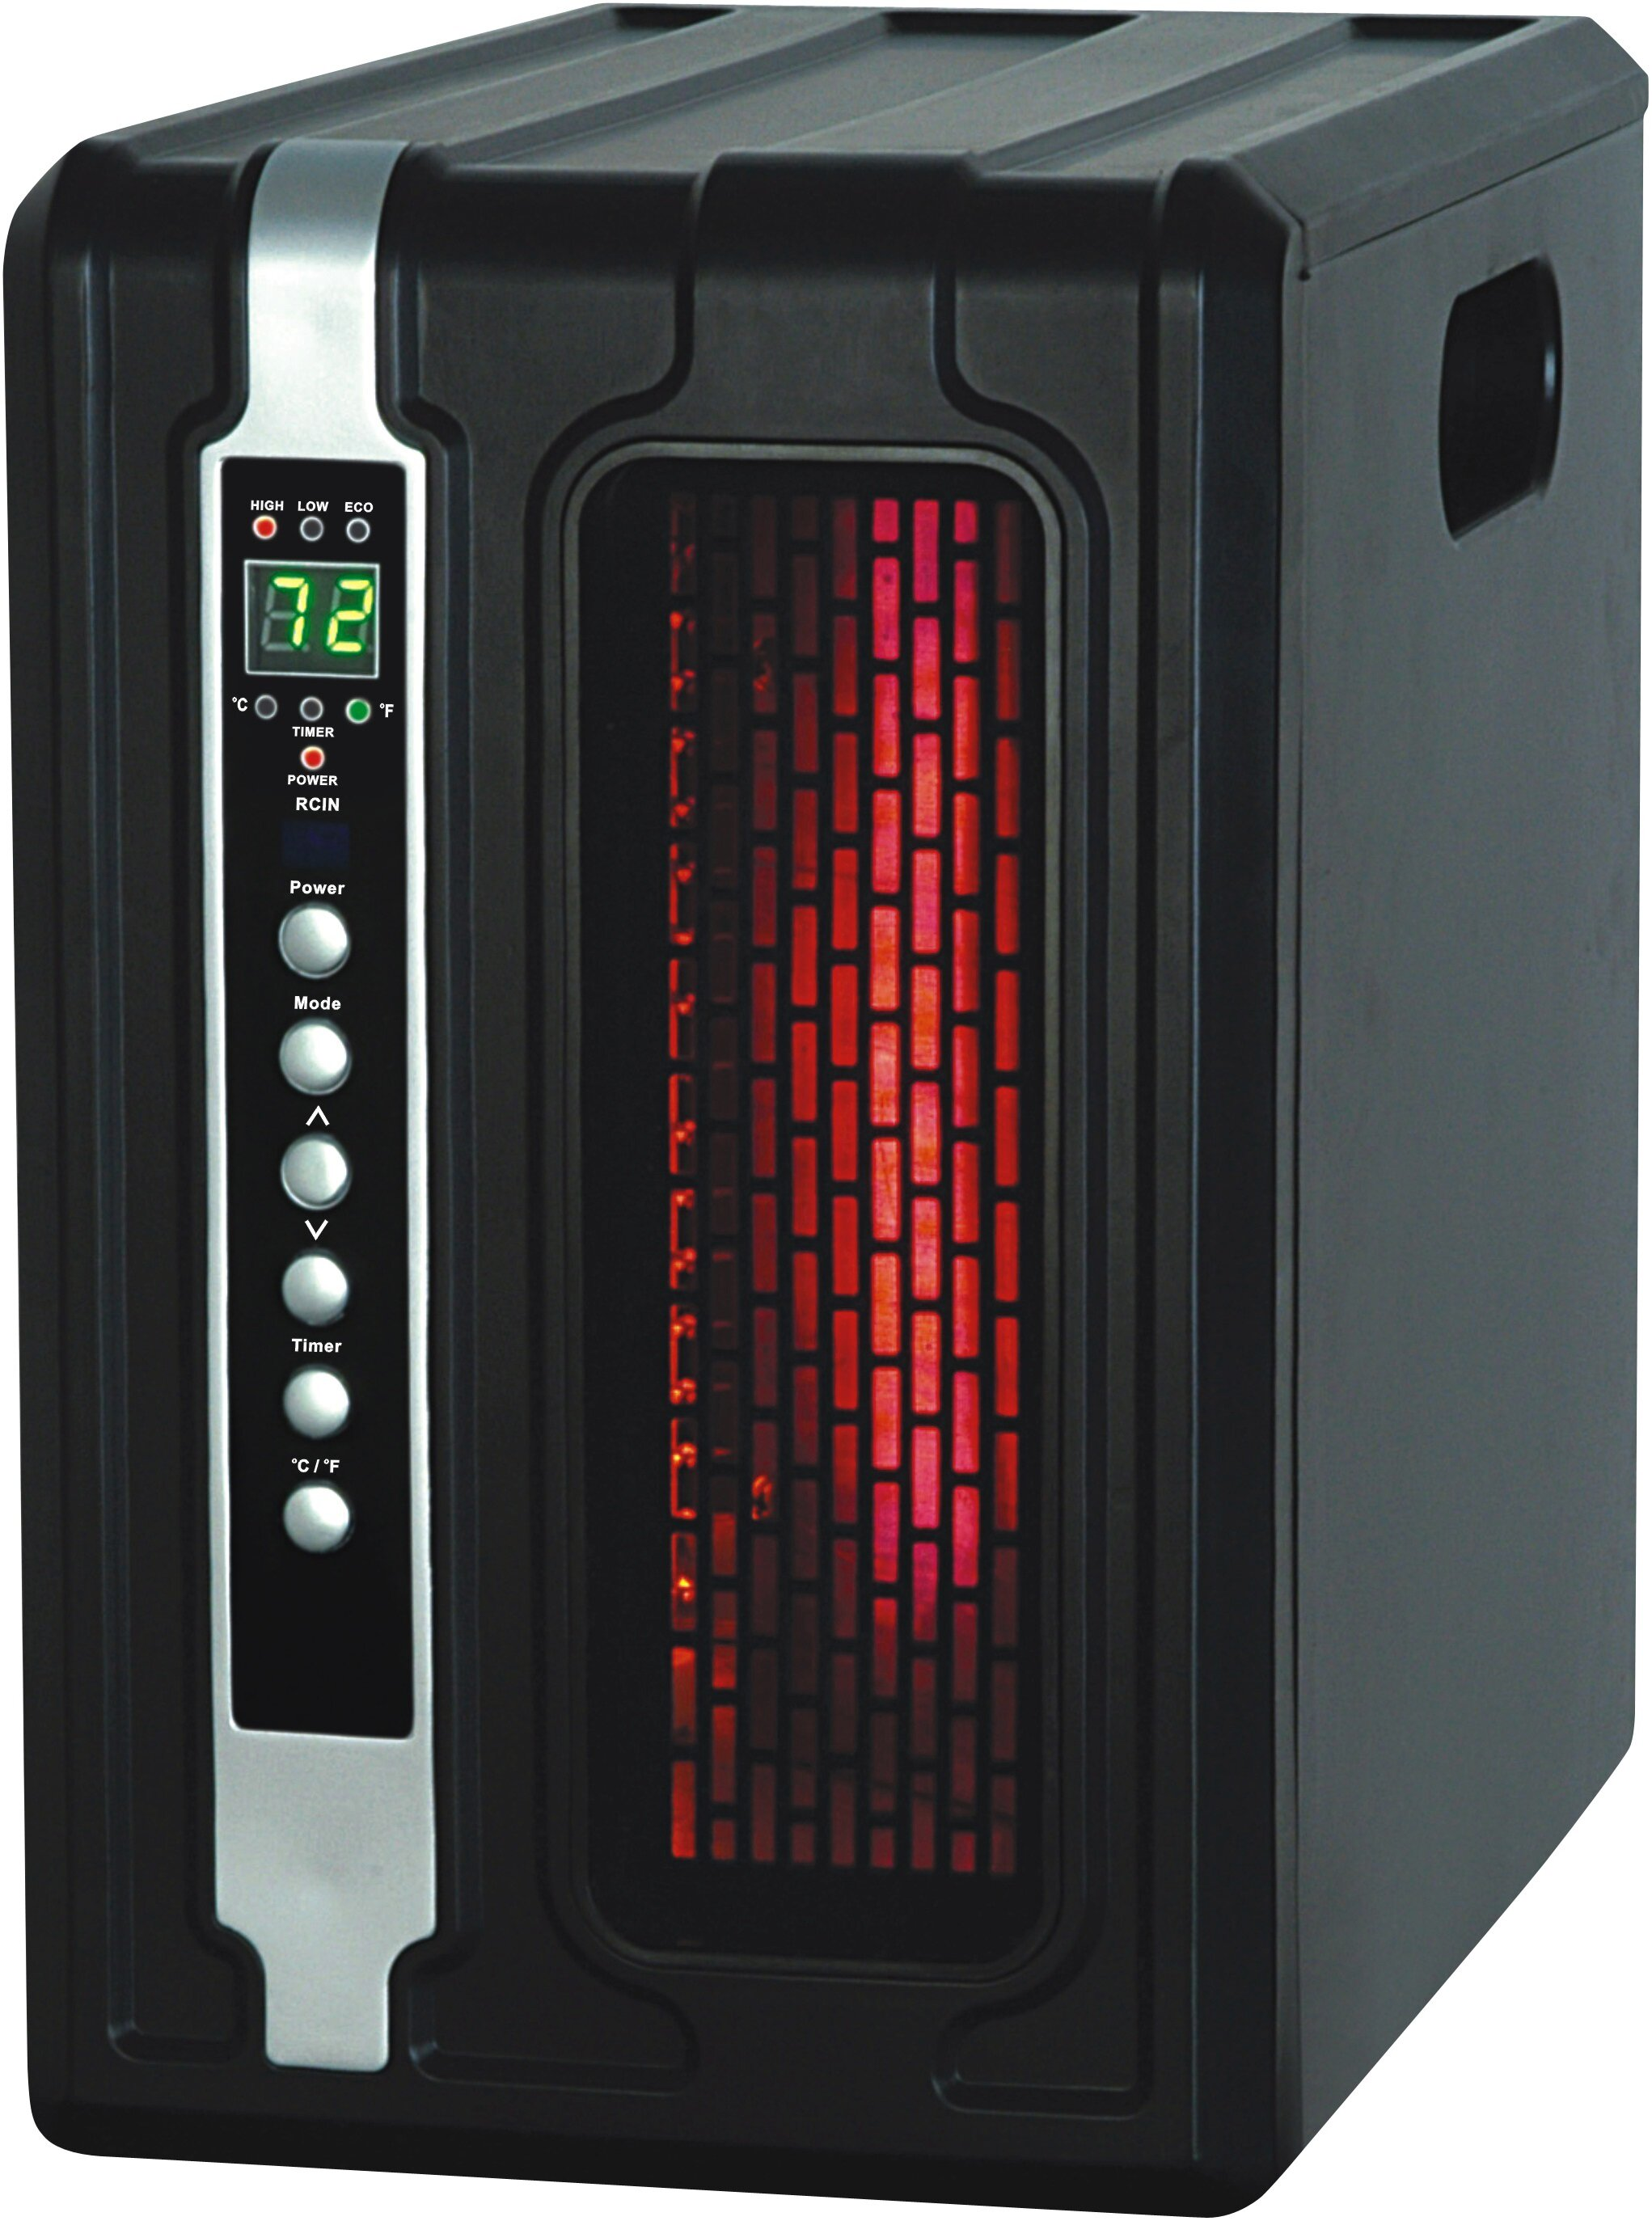 23 1500w Electric Infrared Quartz Tower Space Heater Led Safe Remote Control Heating Cooling Air Air Conditioners Heaters